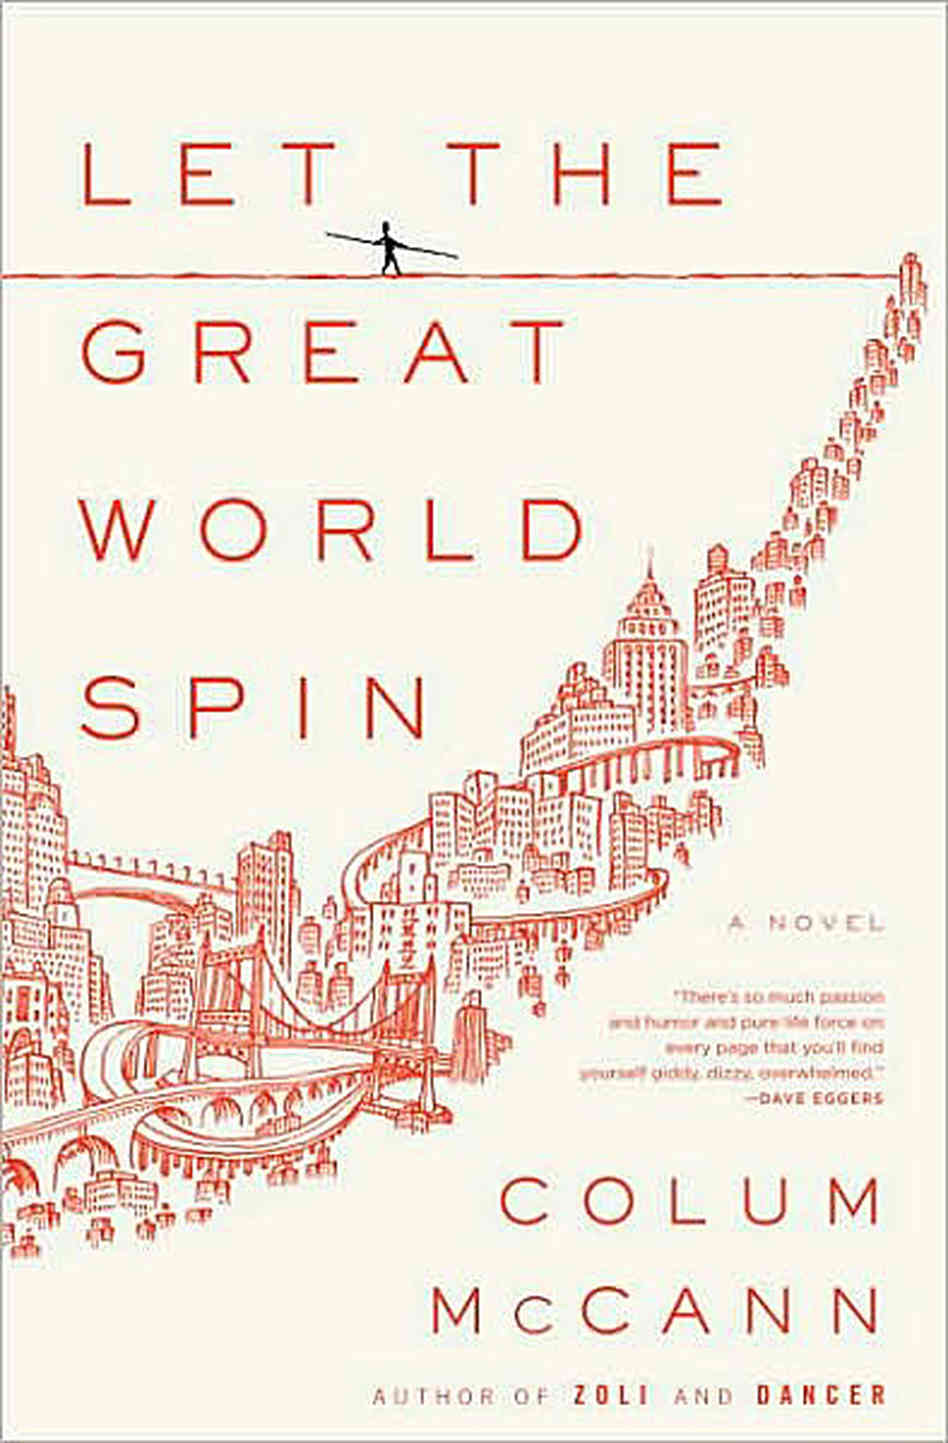 Let the Great World Spin by Colum McCann